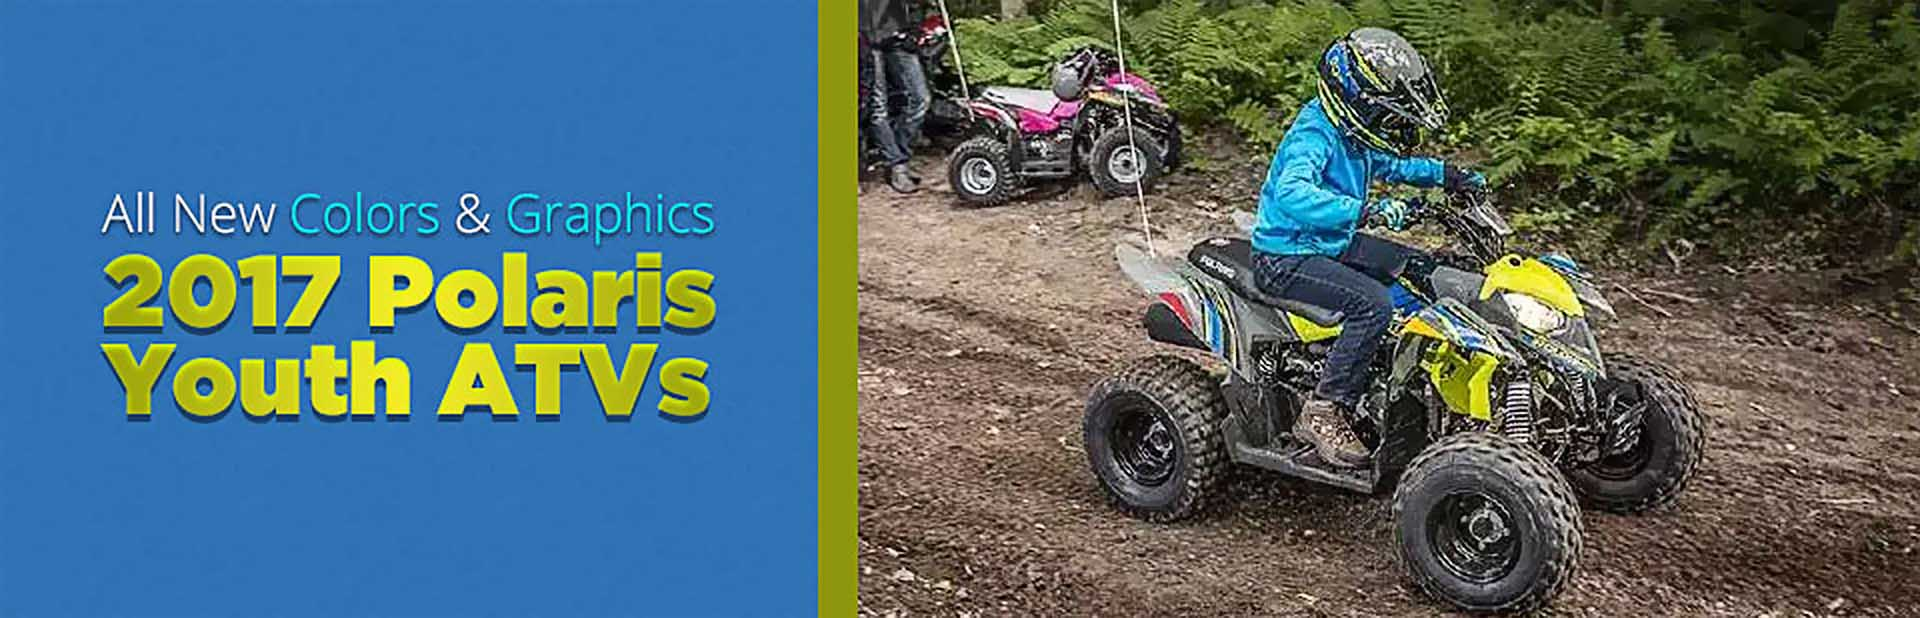 2017 Polaris Youth ATVs: Click here to view the models.